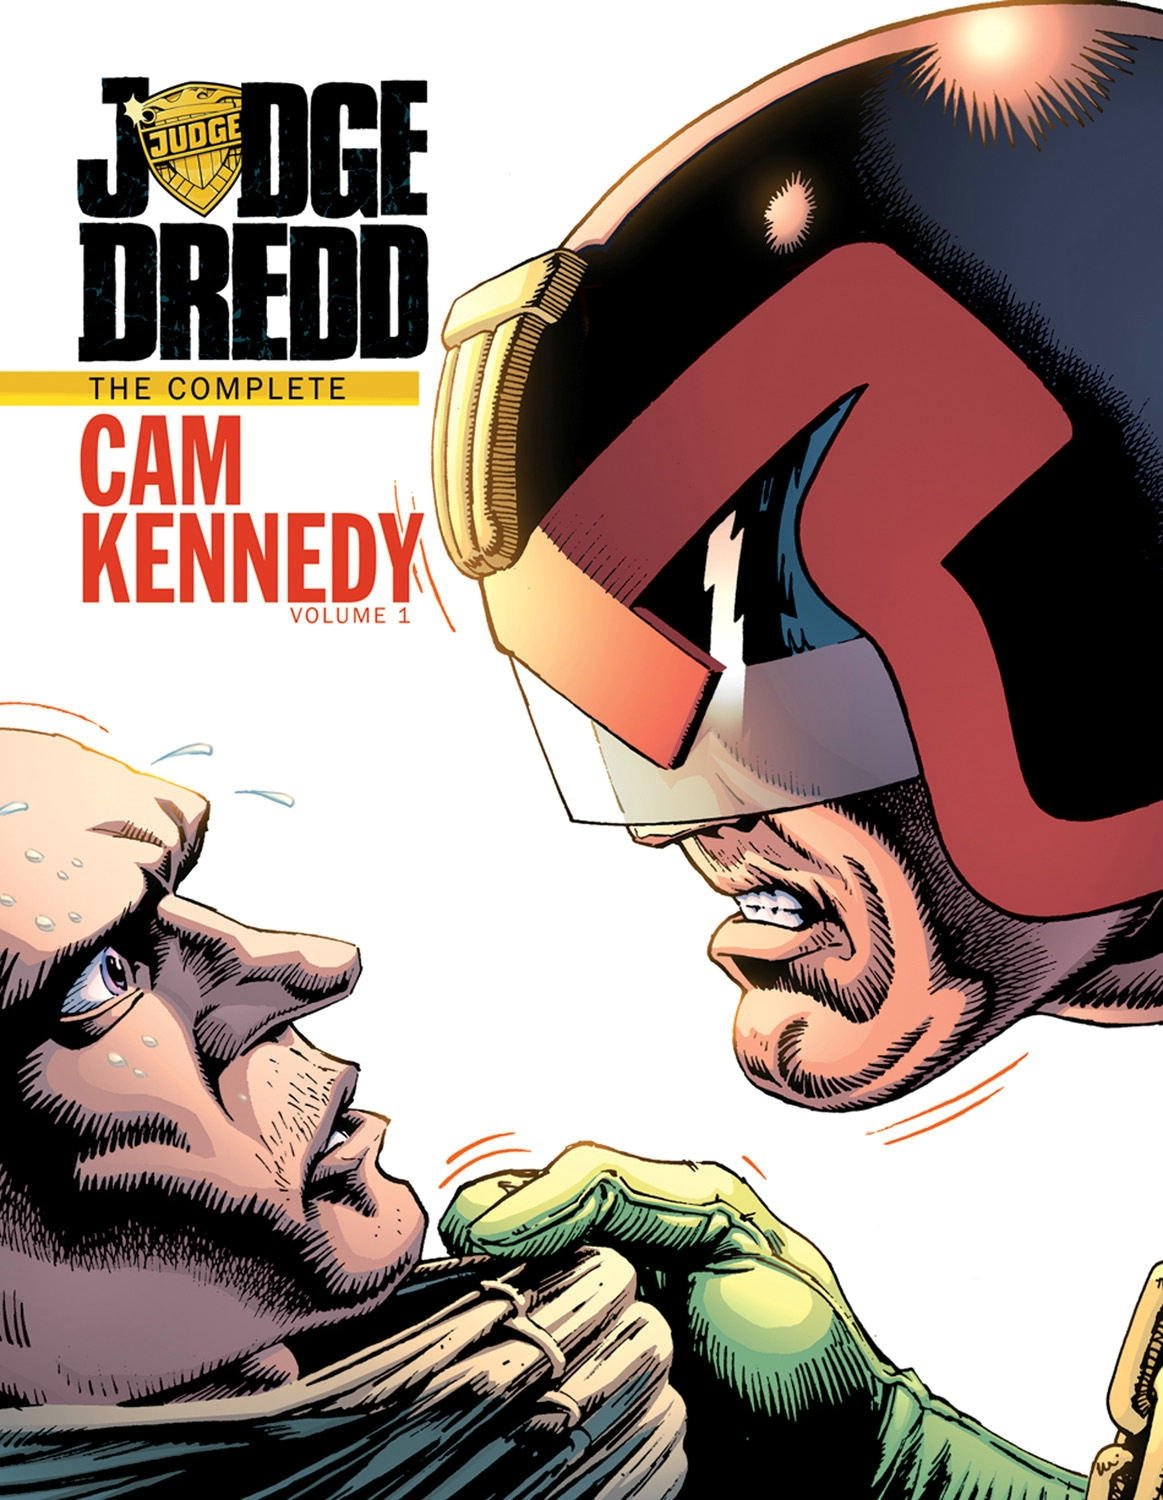 Judge Dredd: The Cam Kennedy Collection Volume 1 by IDW